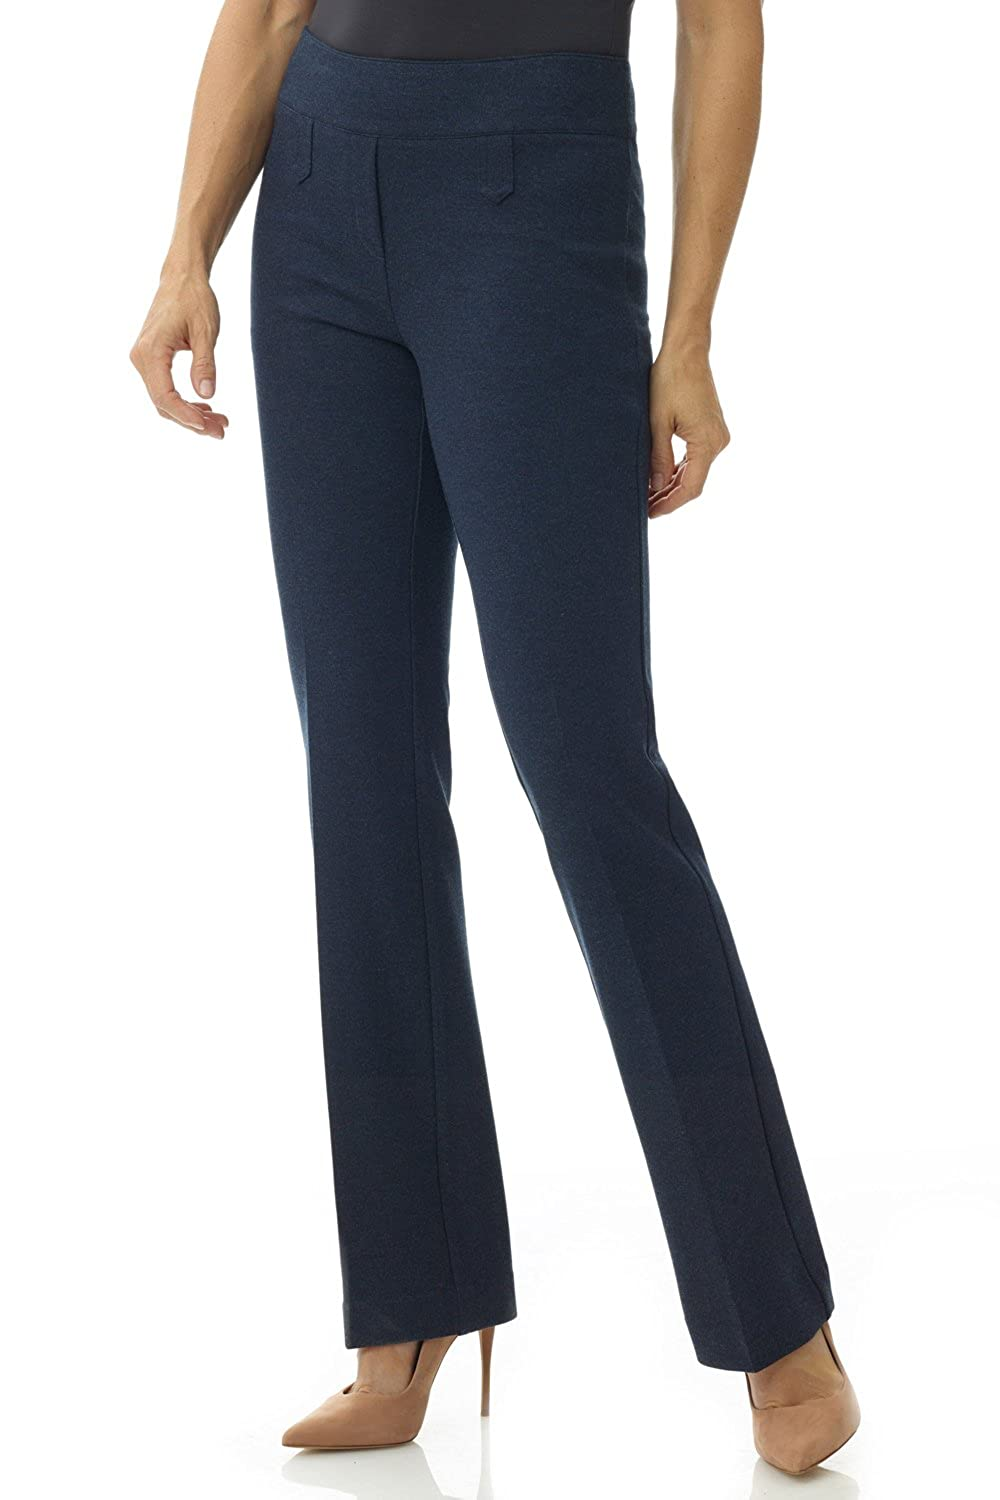 bd6c98ce Rekucci Women's Secret Figure Pull-On Knit Bootcut Pant w/Tummy Control